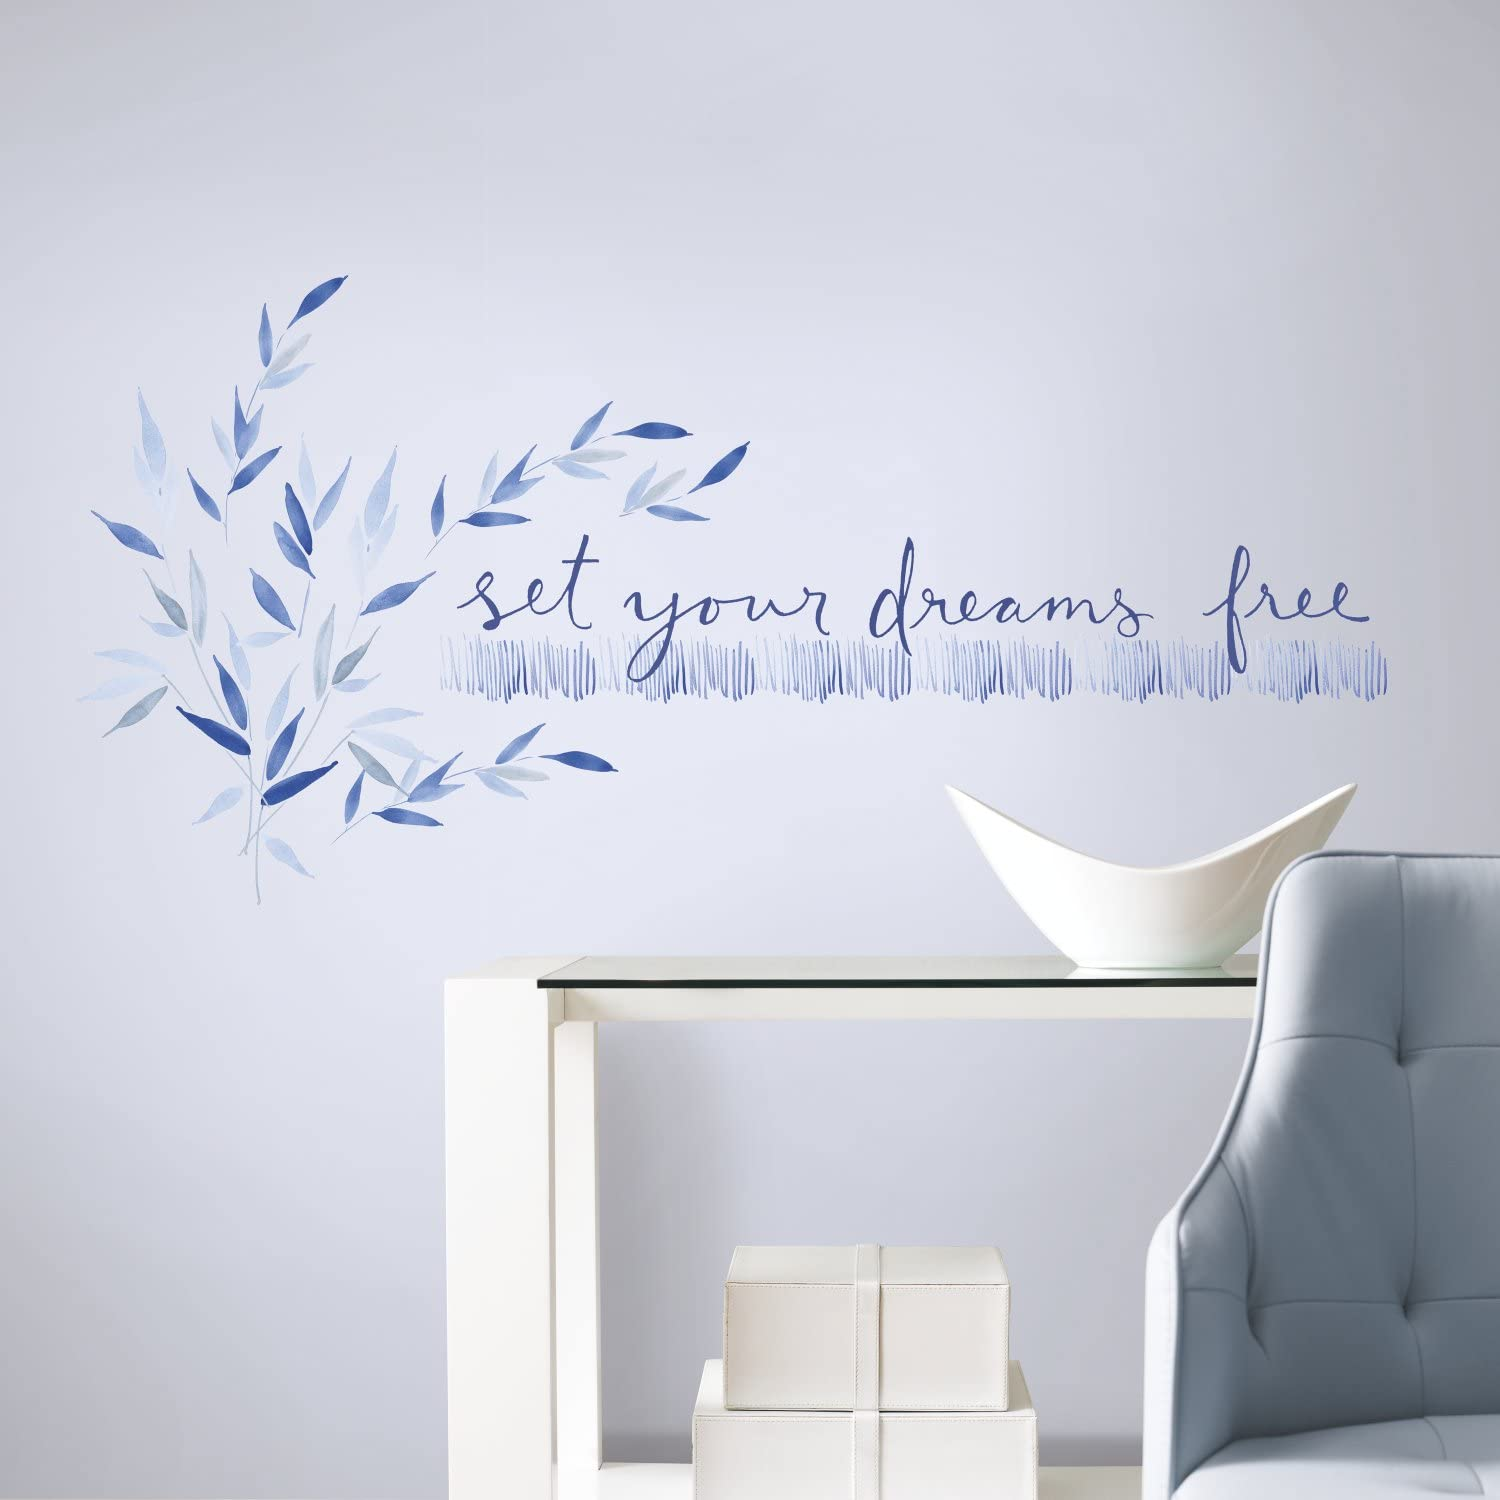 RoomMates Kathy Davis Set Your Dreams Free Quote Peel and Stick Wall Decals